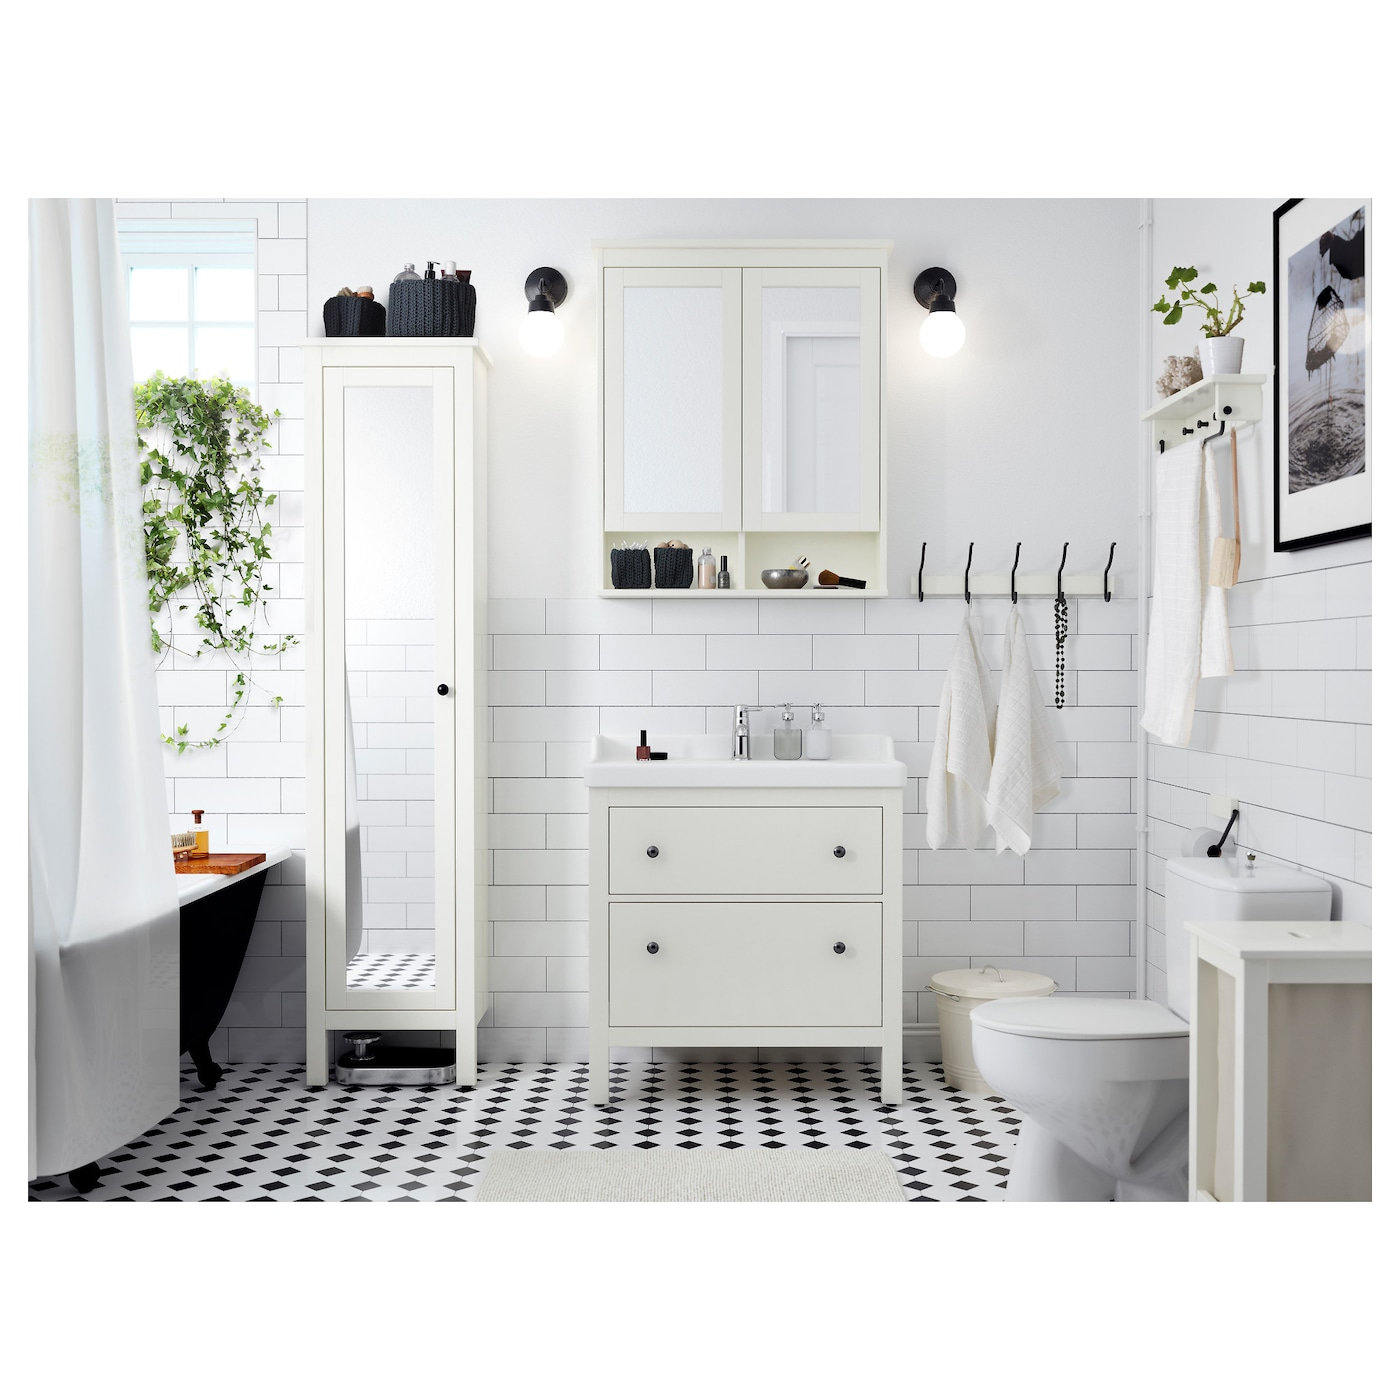 Hemnes mirror cabinet with 2 doors white 83x16x98 cm ikea - Ikea cabinet doors on existing cabinets ...